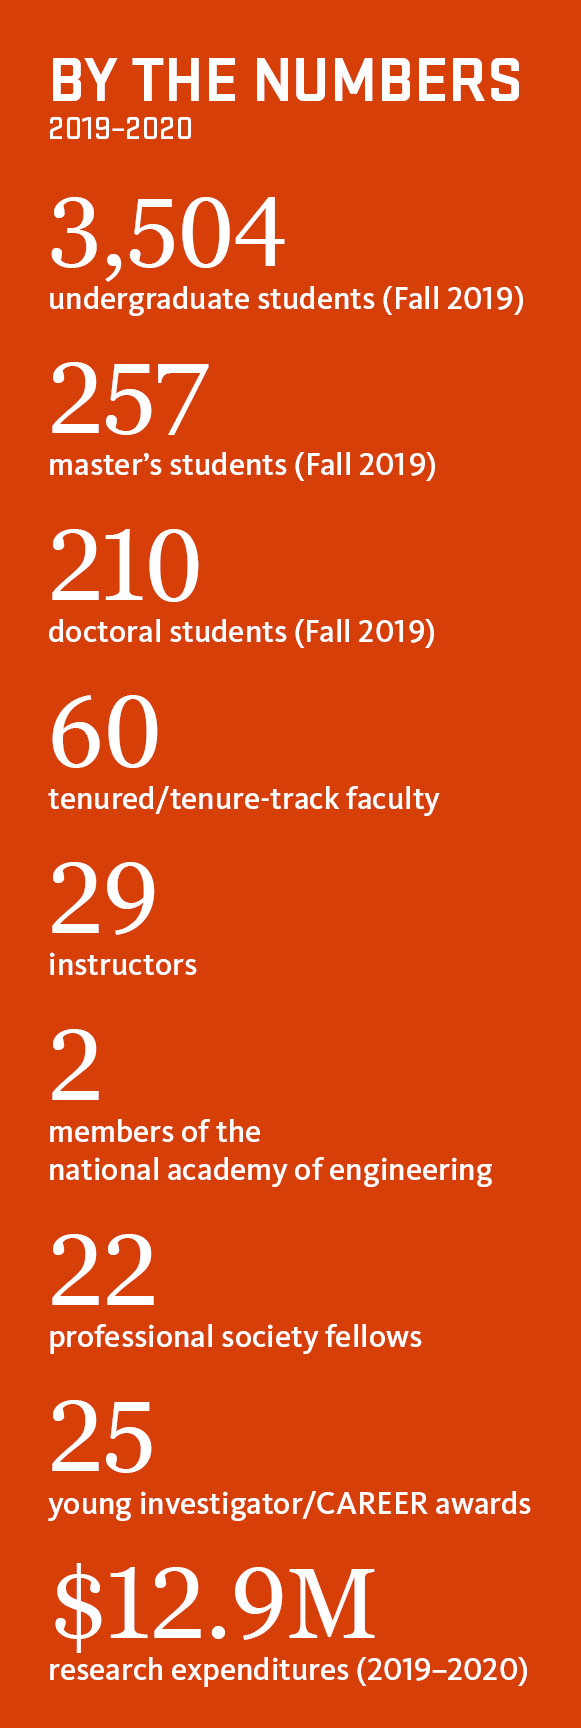 By the Numbers 2019–2020; 3504 undergraduate students (Fall 2019); 257 master's students (Fall 2019); 210 doctoral students (Fall 2019); 60 tenured/tenure-track faculty; 29 instructors; 2 members of the national academy of engineering; 22 professional society fellows; 25 young investigator/CAREER awards; $12.9M research expenditures (2019–2020)